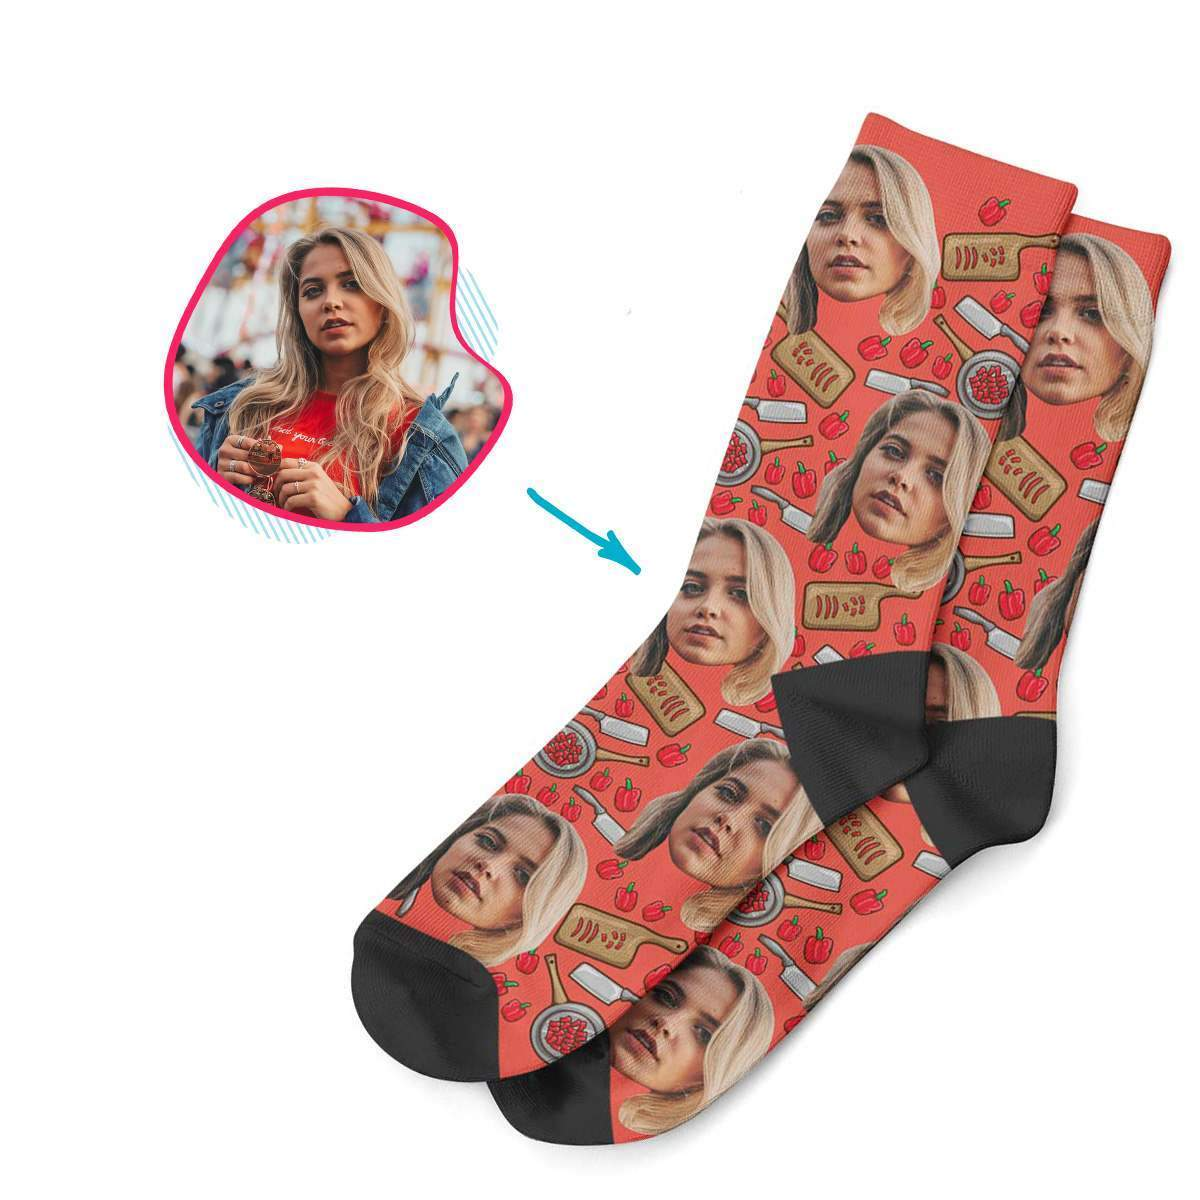 red Сooking socks personalized with photo of face printed on them